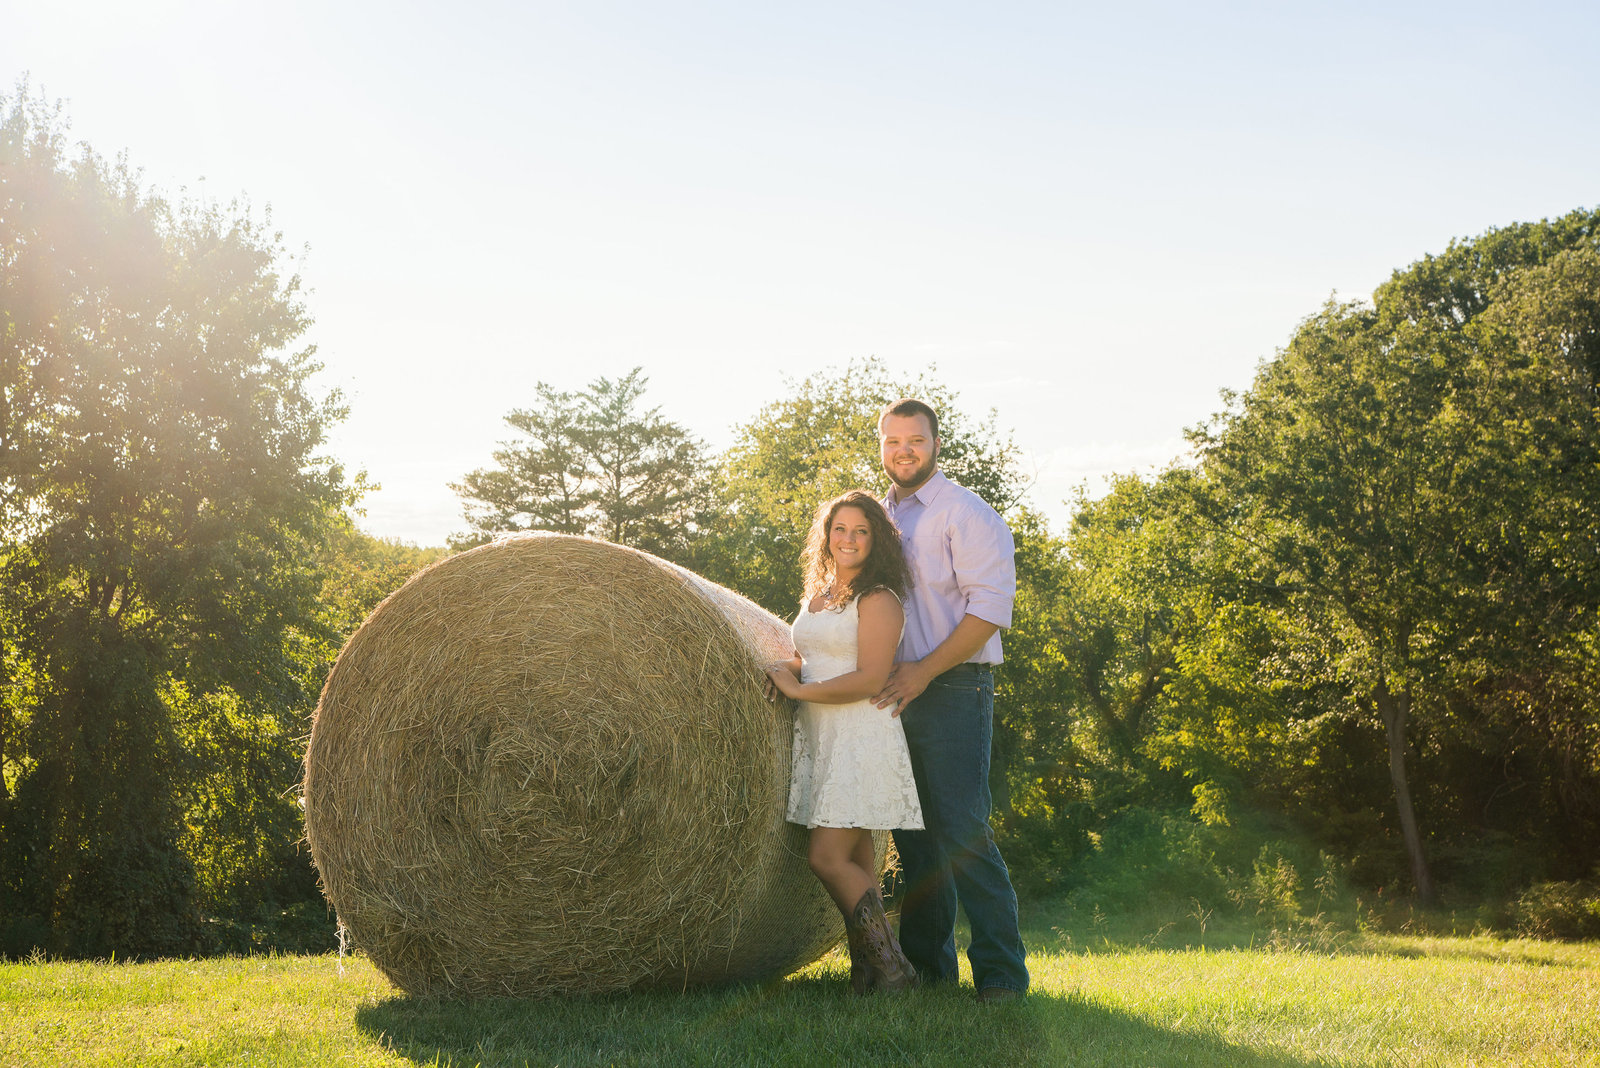 NJ_Rustic_Engagement_Photography004